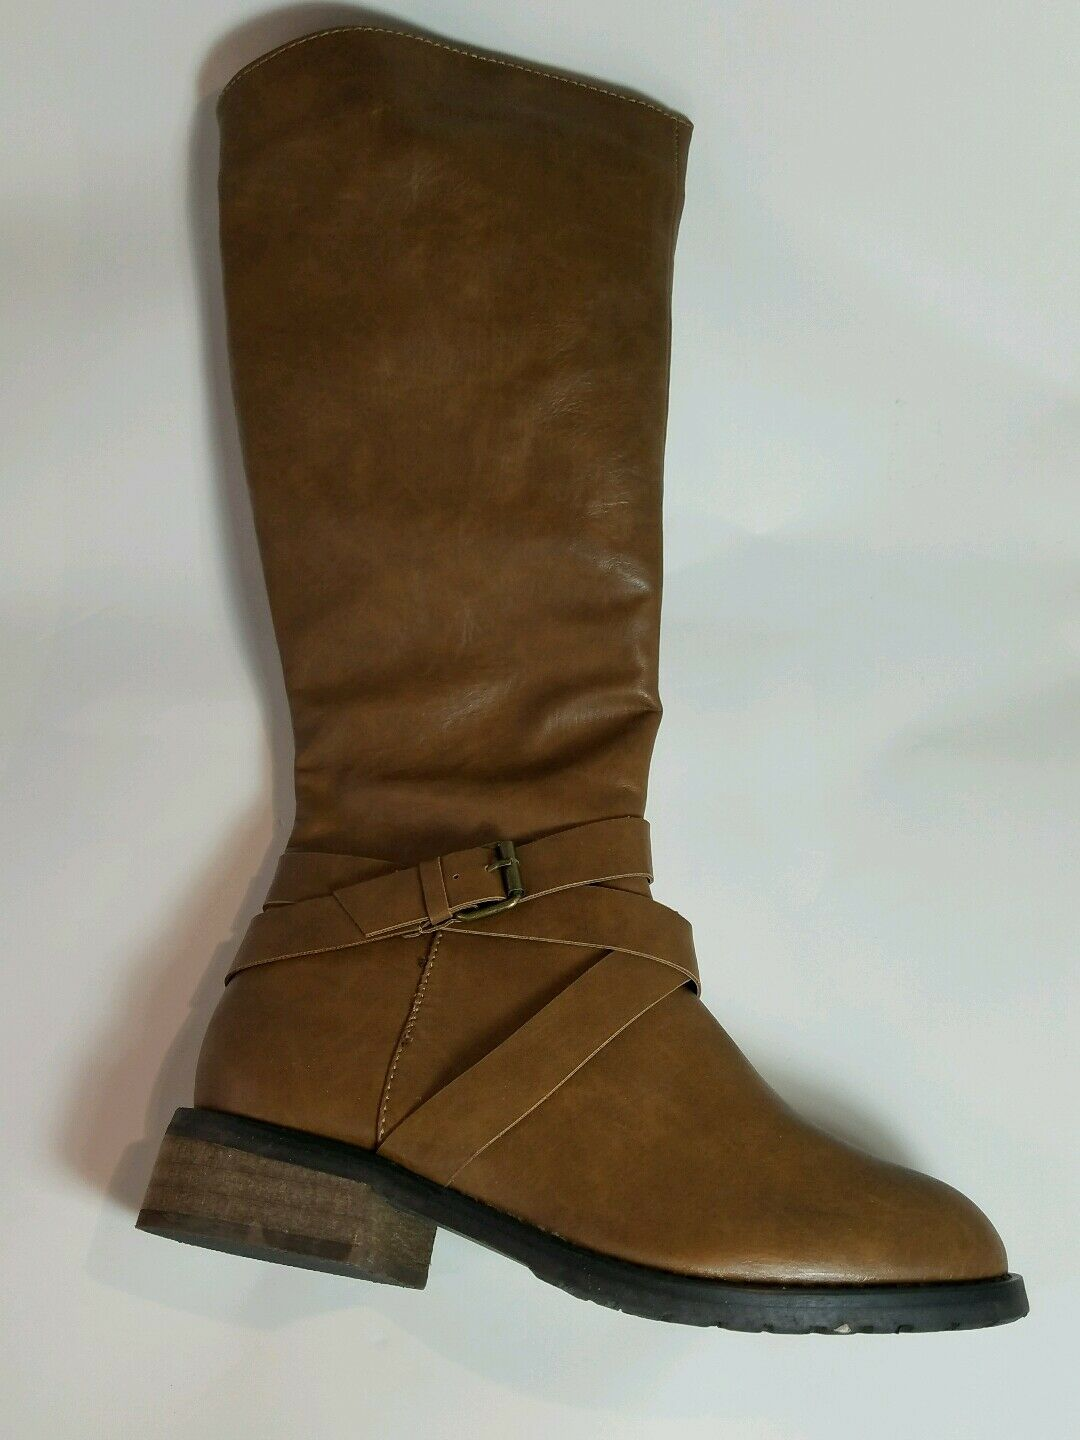 Bucco Capensis Venita Cognac Tan/Brown Riding Boot SIZE 7 BOX IS DISTRESSED